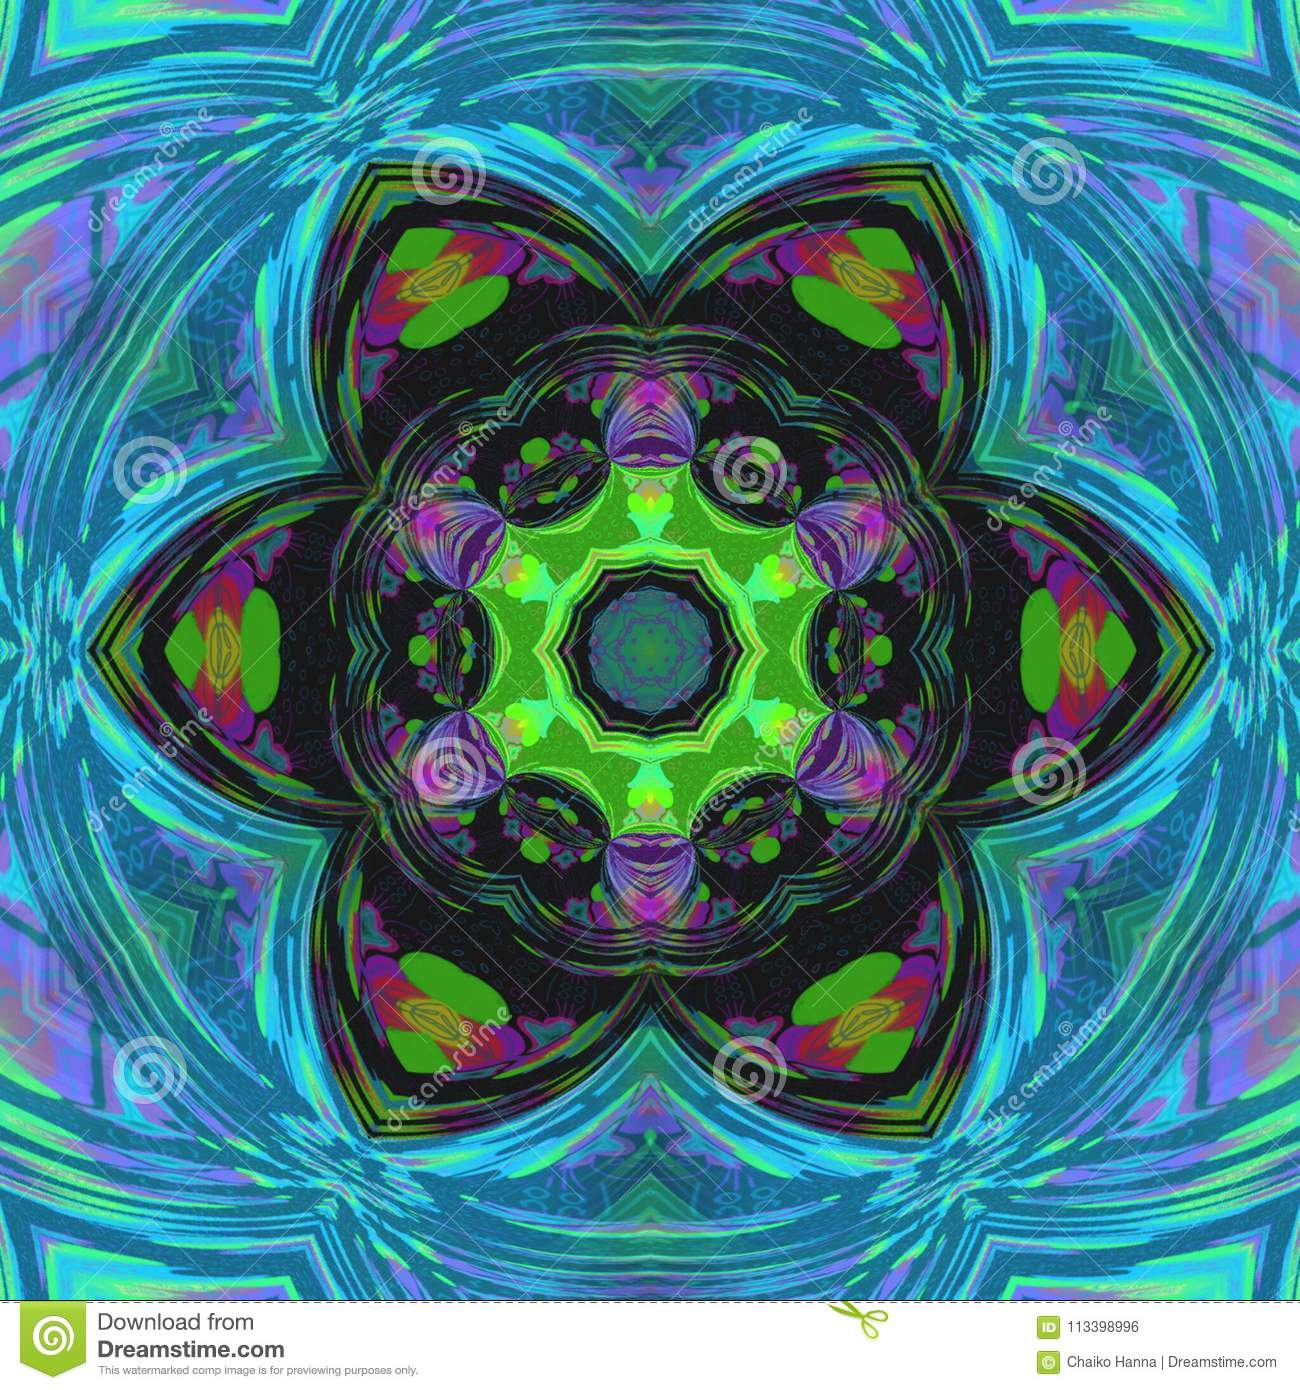 Symmetrical multicolor fractal floral mandala in tile stained glass style